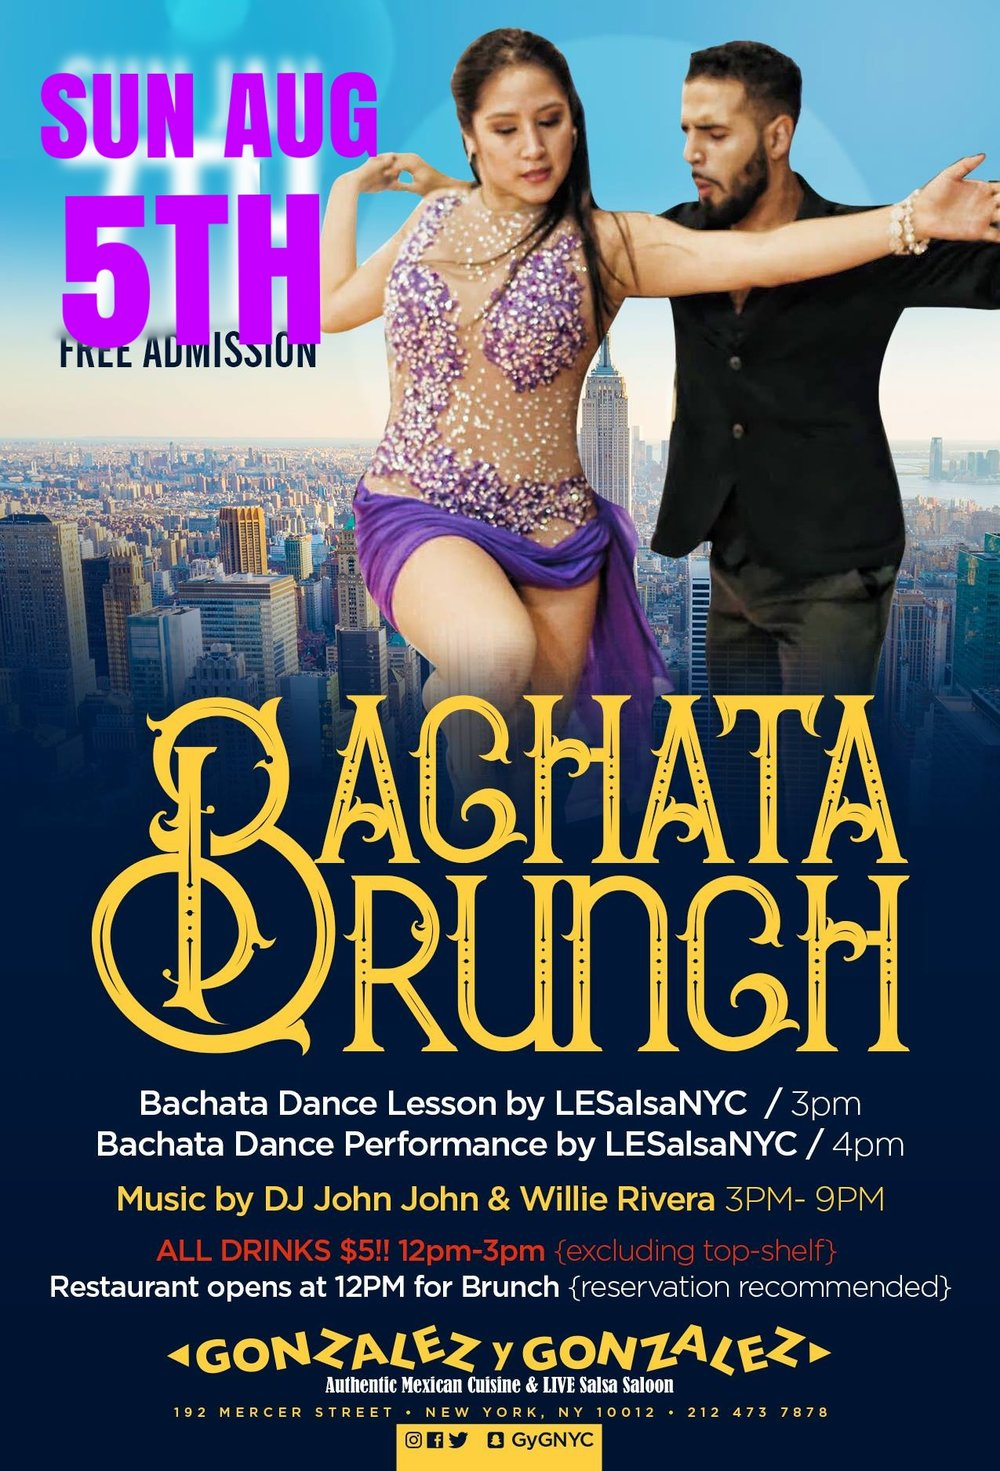 Bachata Brunch at Gonzalez y Gonzalez - WHERE: 192 Mercer StreetWHEN: Sunday August 5thTIME: 3pmFREE AdmissionBrunch menu, bachata lesson and show, social dancing.dj john john & Willie $5 drinks 12-3pm